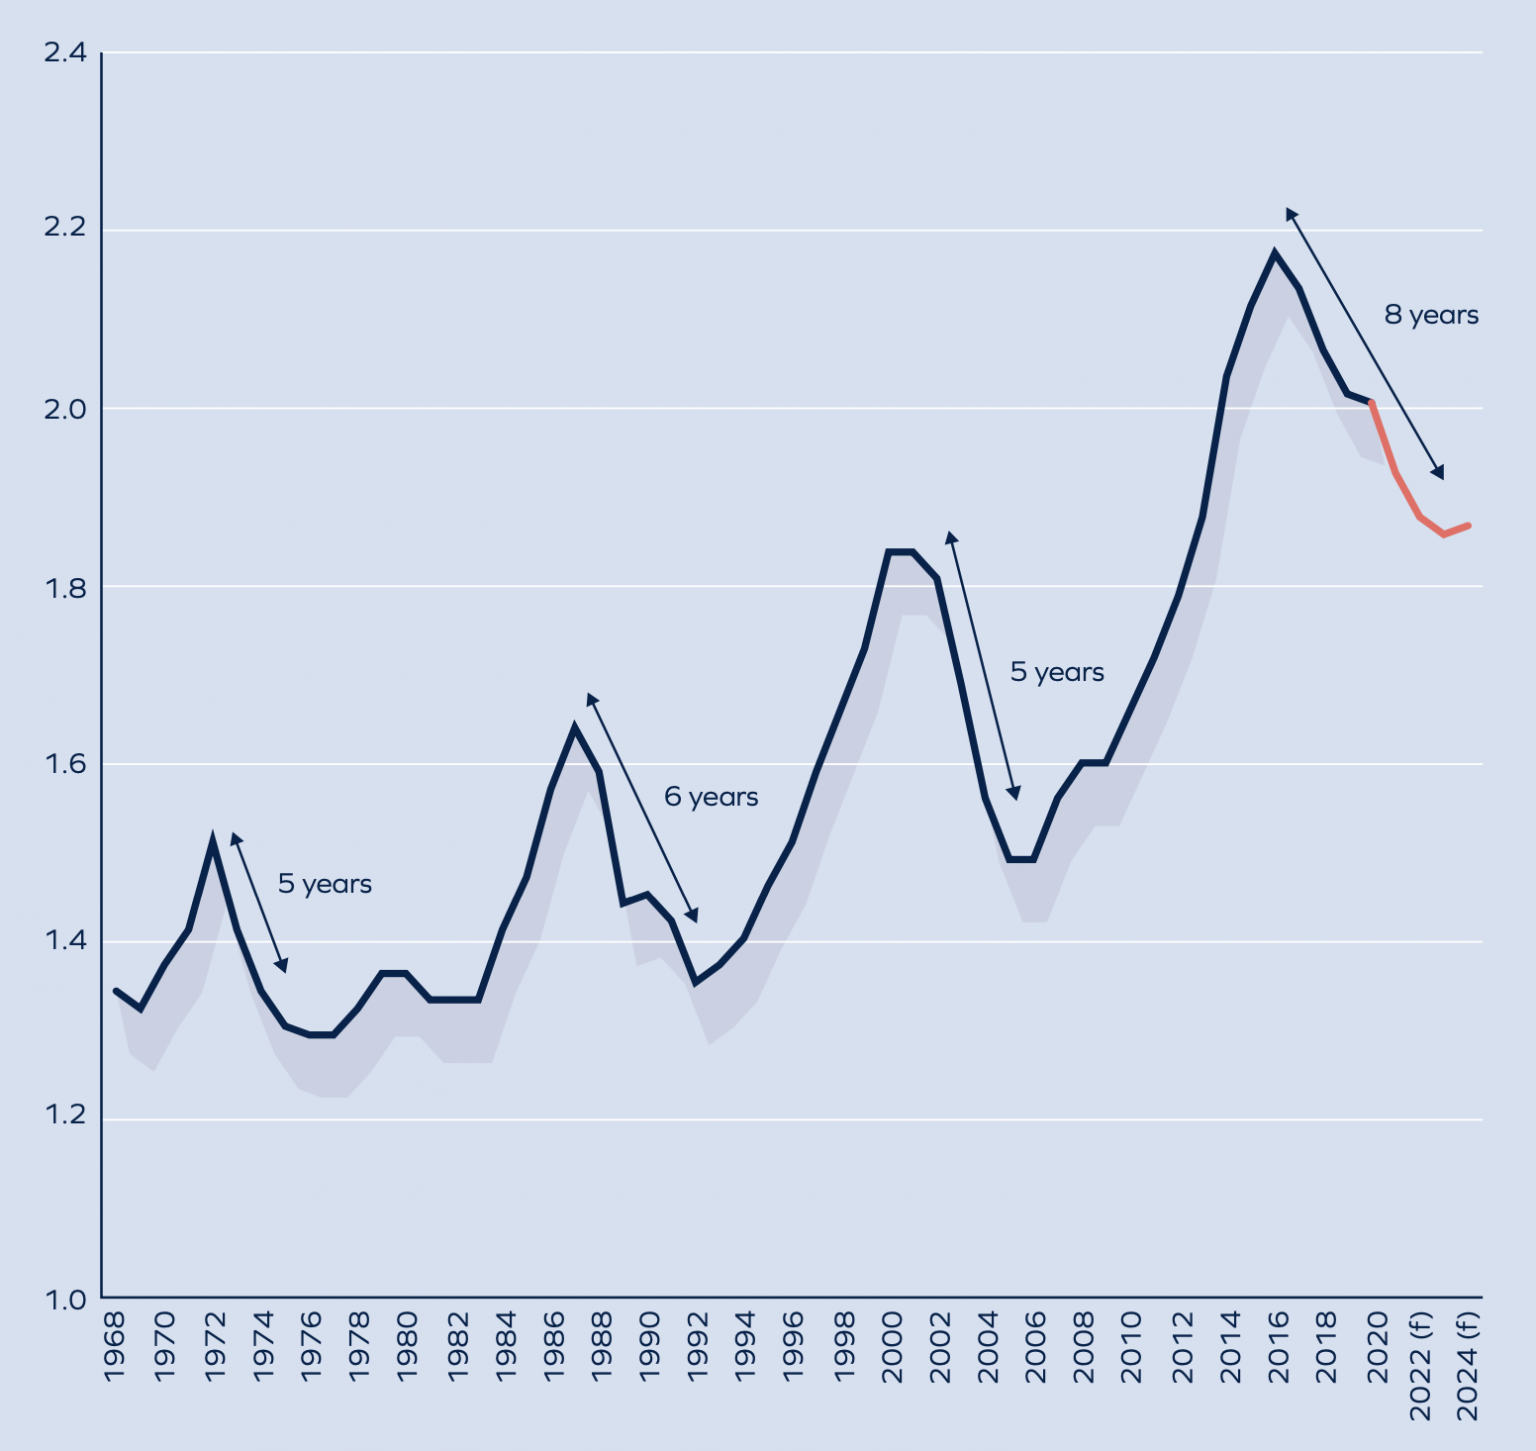 Ratio-of-London-house-prices-to-Great-Britain-average-1536x1451.png